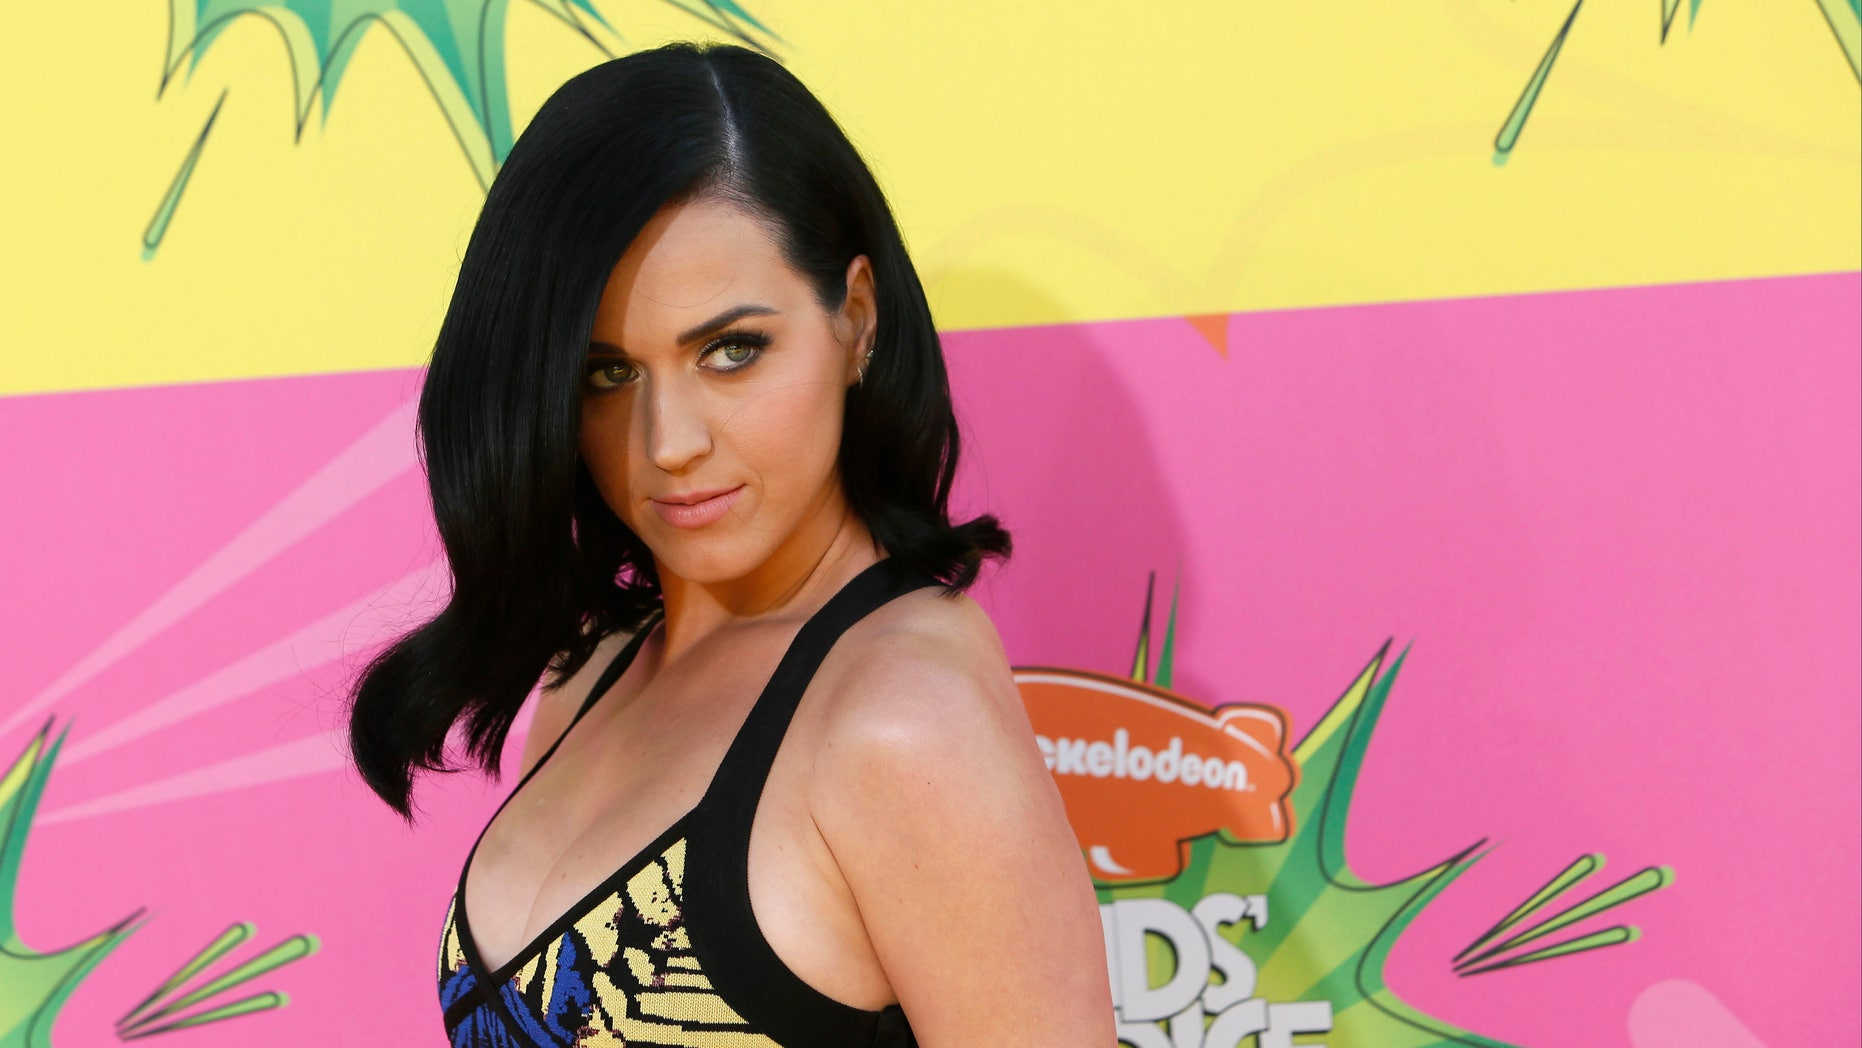 Singer Katy Perry arrives at the 2013 Kids Choice Awards in Los Angeles, California March 23, 2013. REUTERS/Patrick T. Fallon   (UNITED STATES - Tags: ENTERTAINMENT) - RTXXV2L